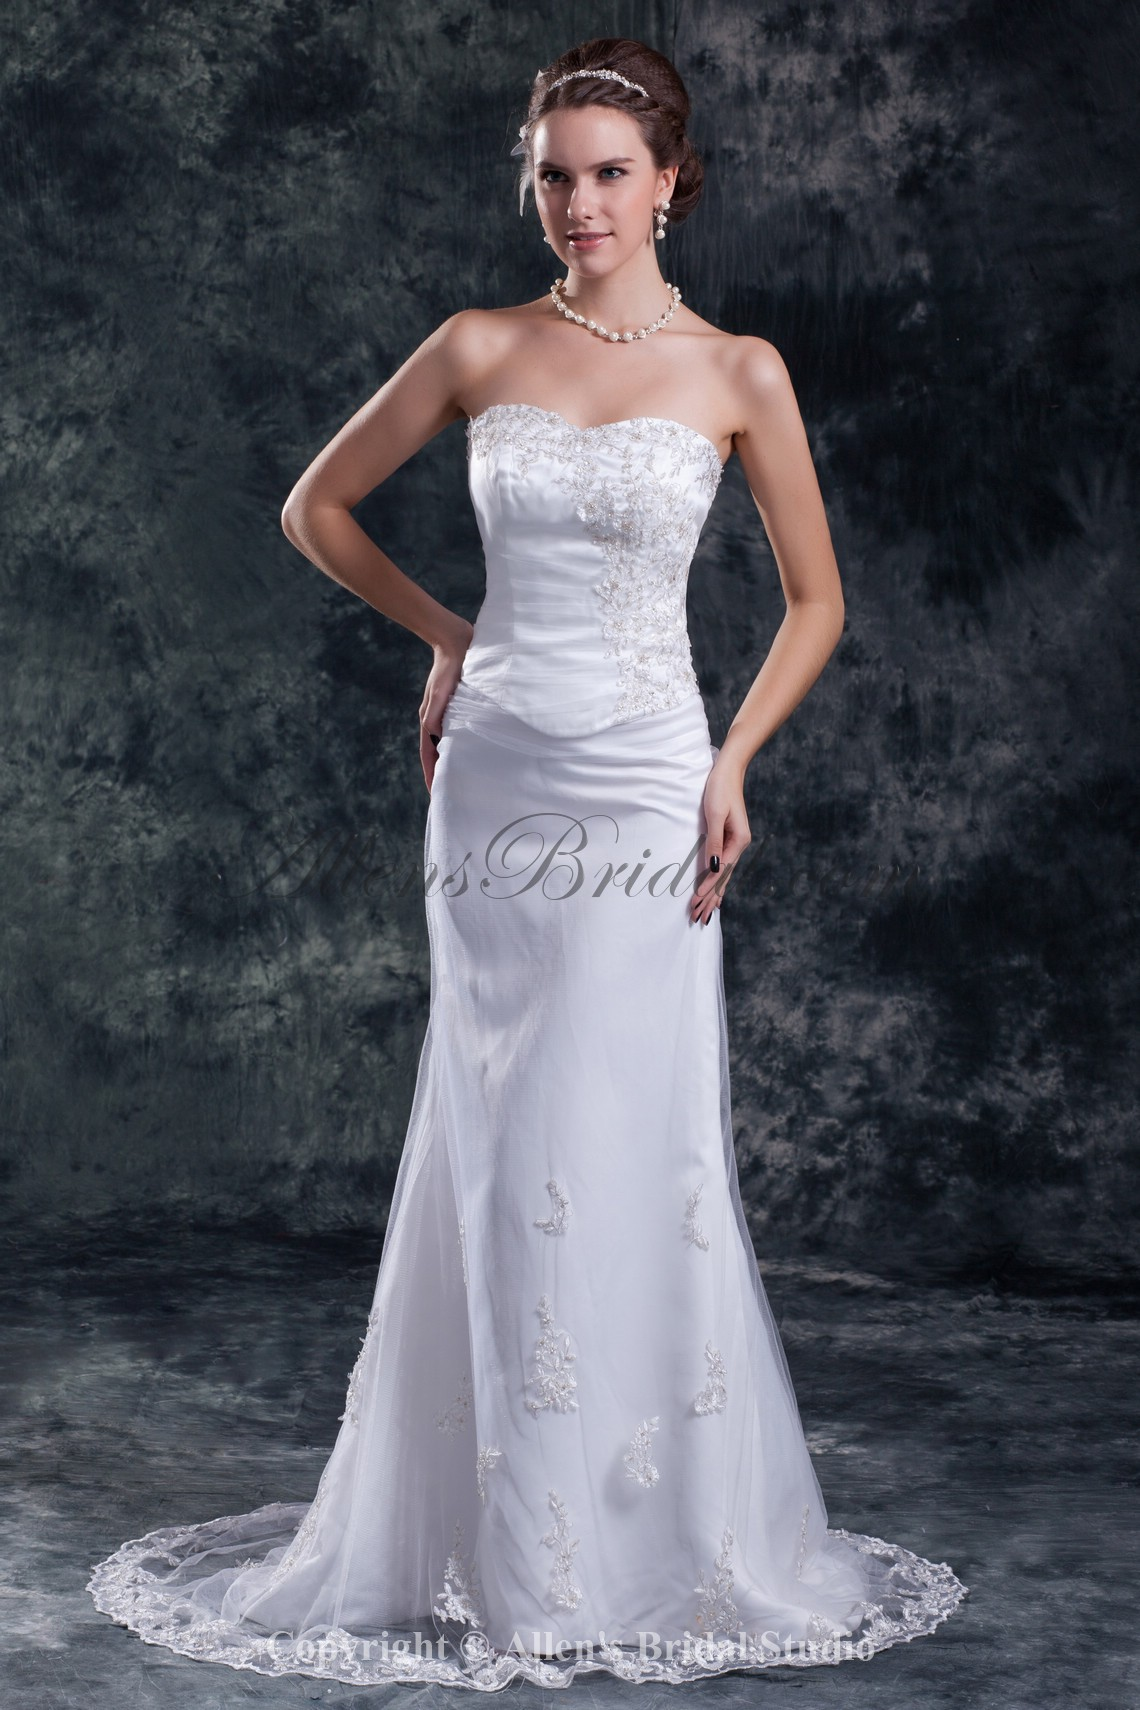 /848-6794/net-sweetheart-neckline-sweep-train-sheath-embroidered-wedding-dress.jpg